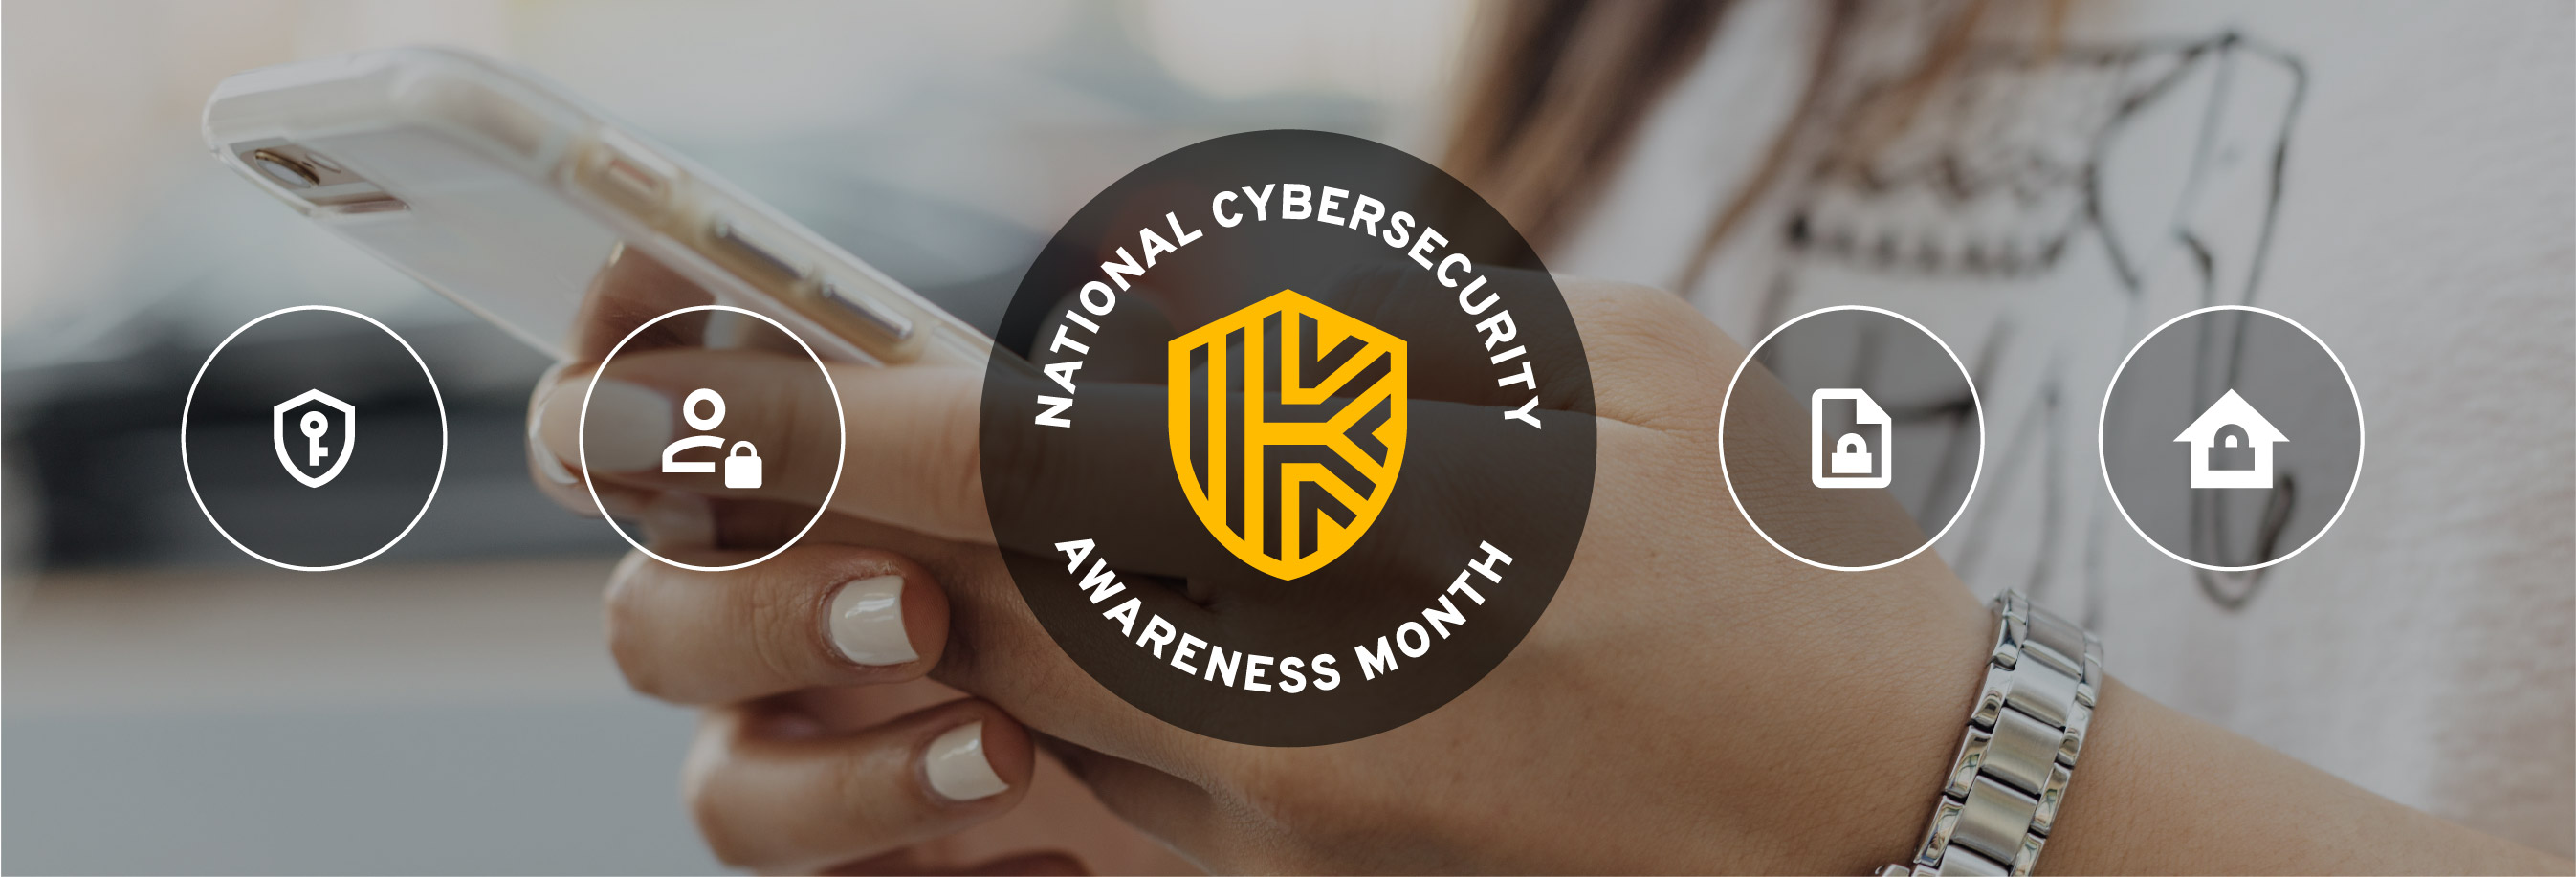 #NCSAM Tip: Don't Wait for a Business to Tell You That Your Password Was Stolen